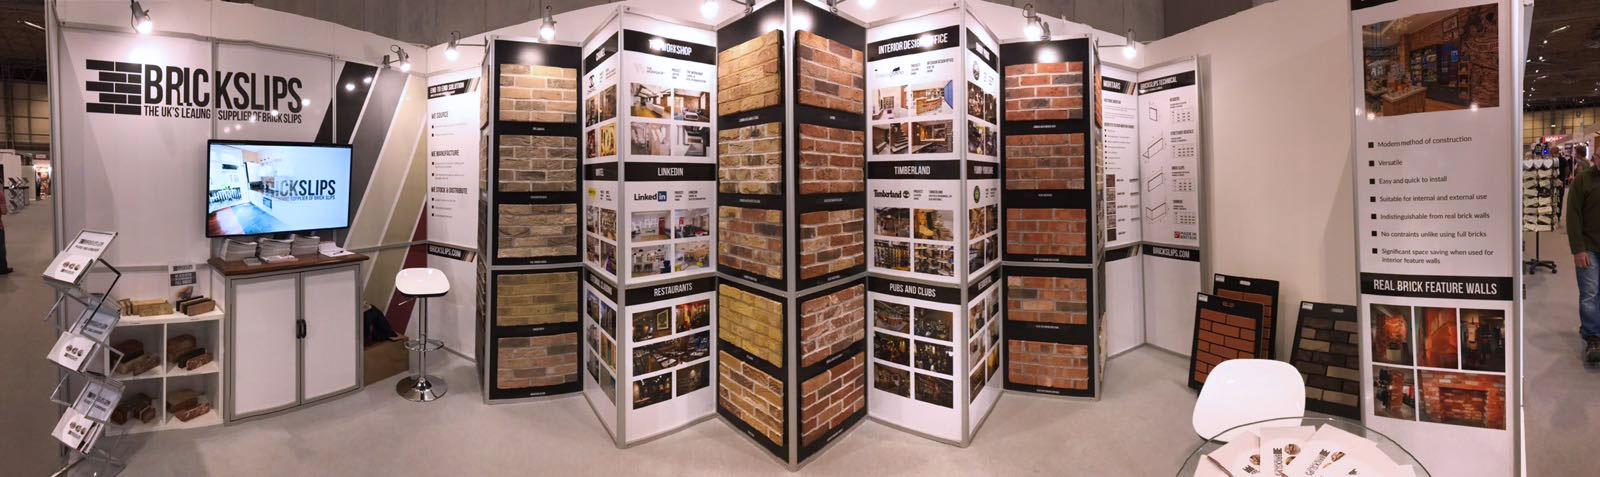 Brick Slips Trade Stand - Grand Designs Live